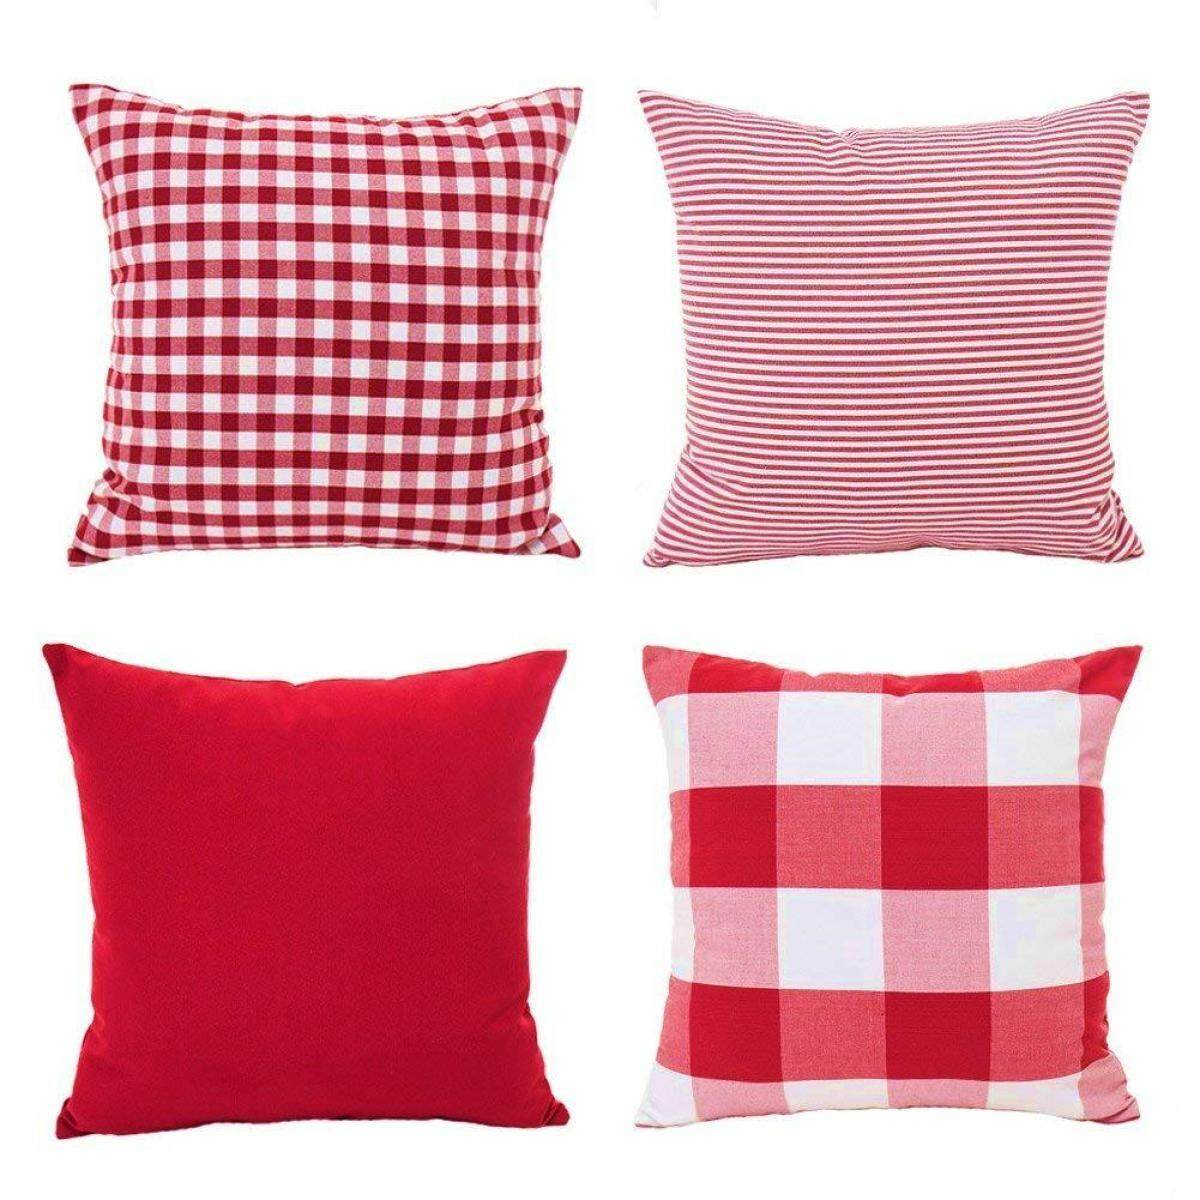 Christmas Red White Throw Pillow Case Cushion Cover Holiday Decor for Sofa Set of 4(Checkered Plaid, Stripe, Lattice) Free Shipping